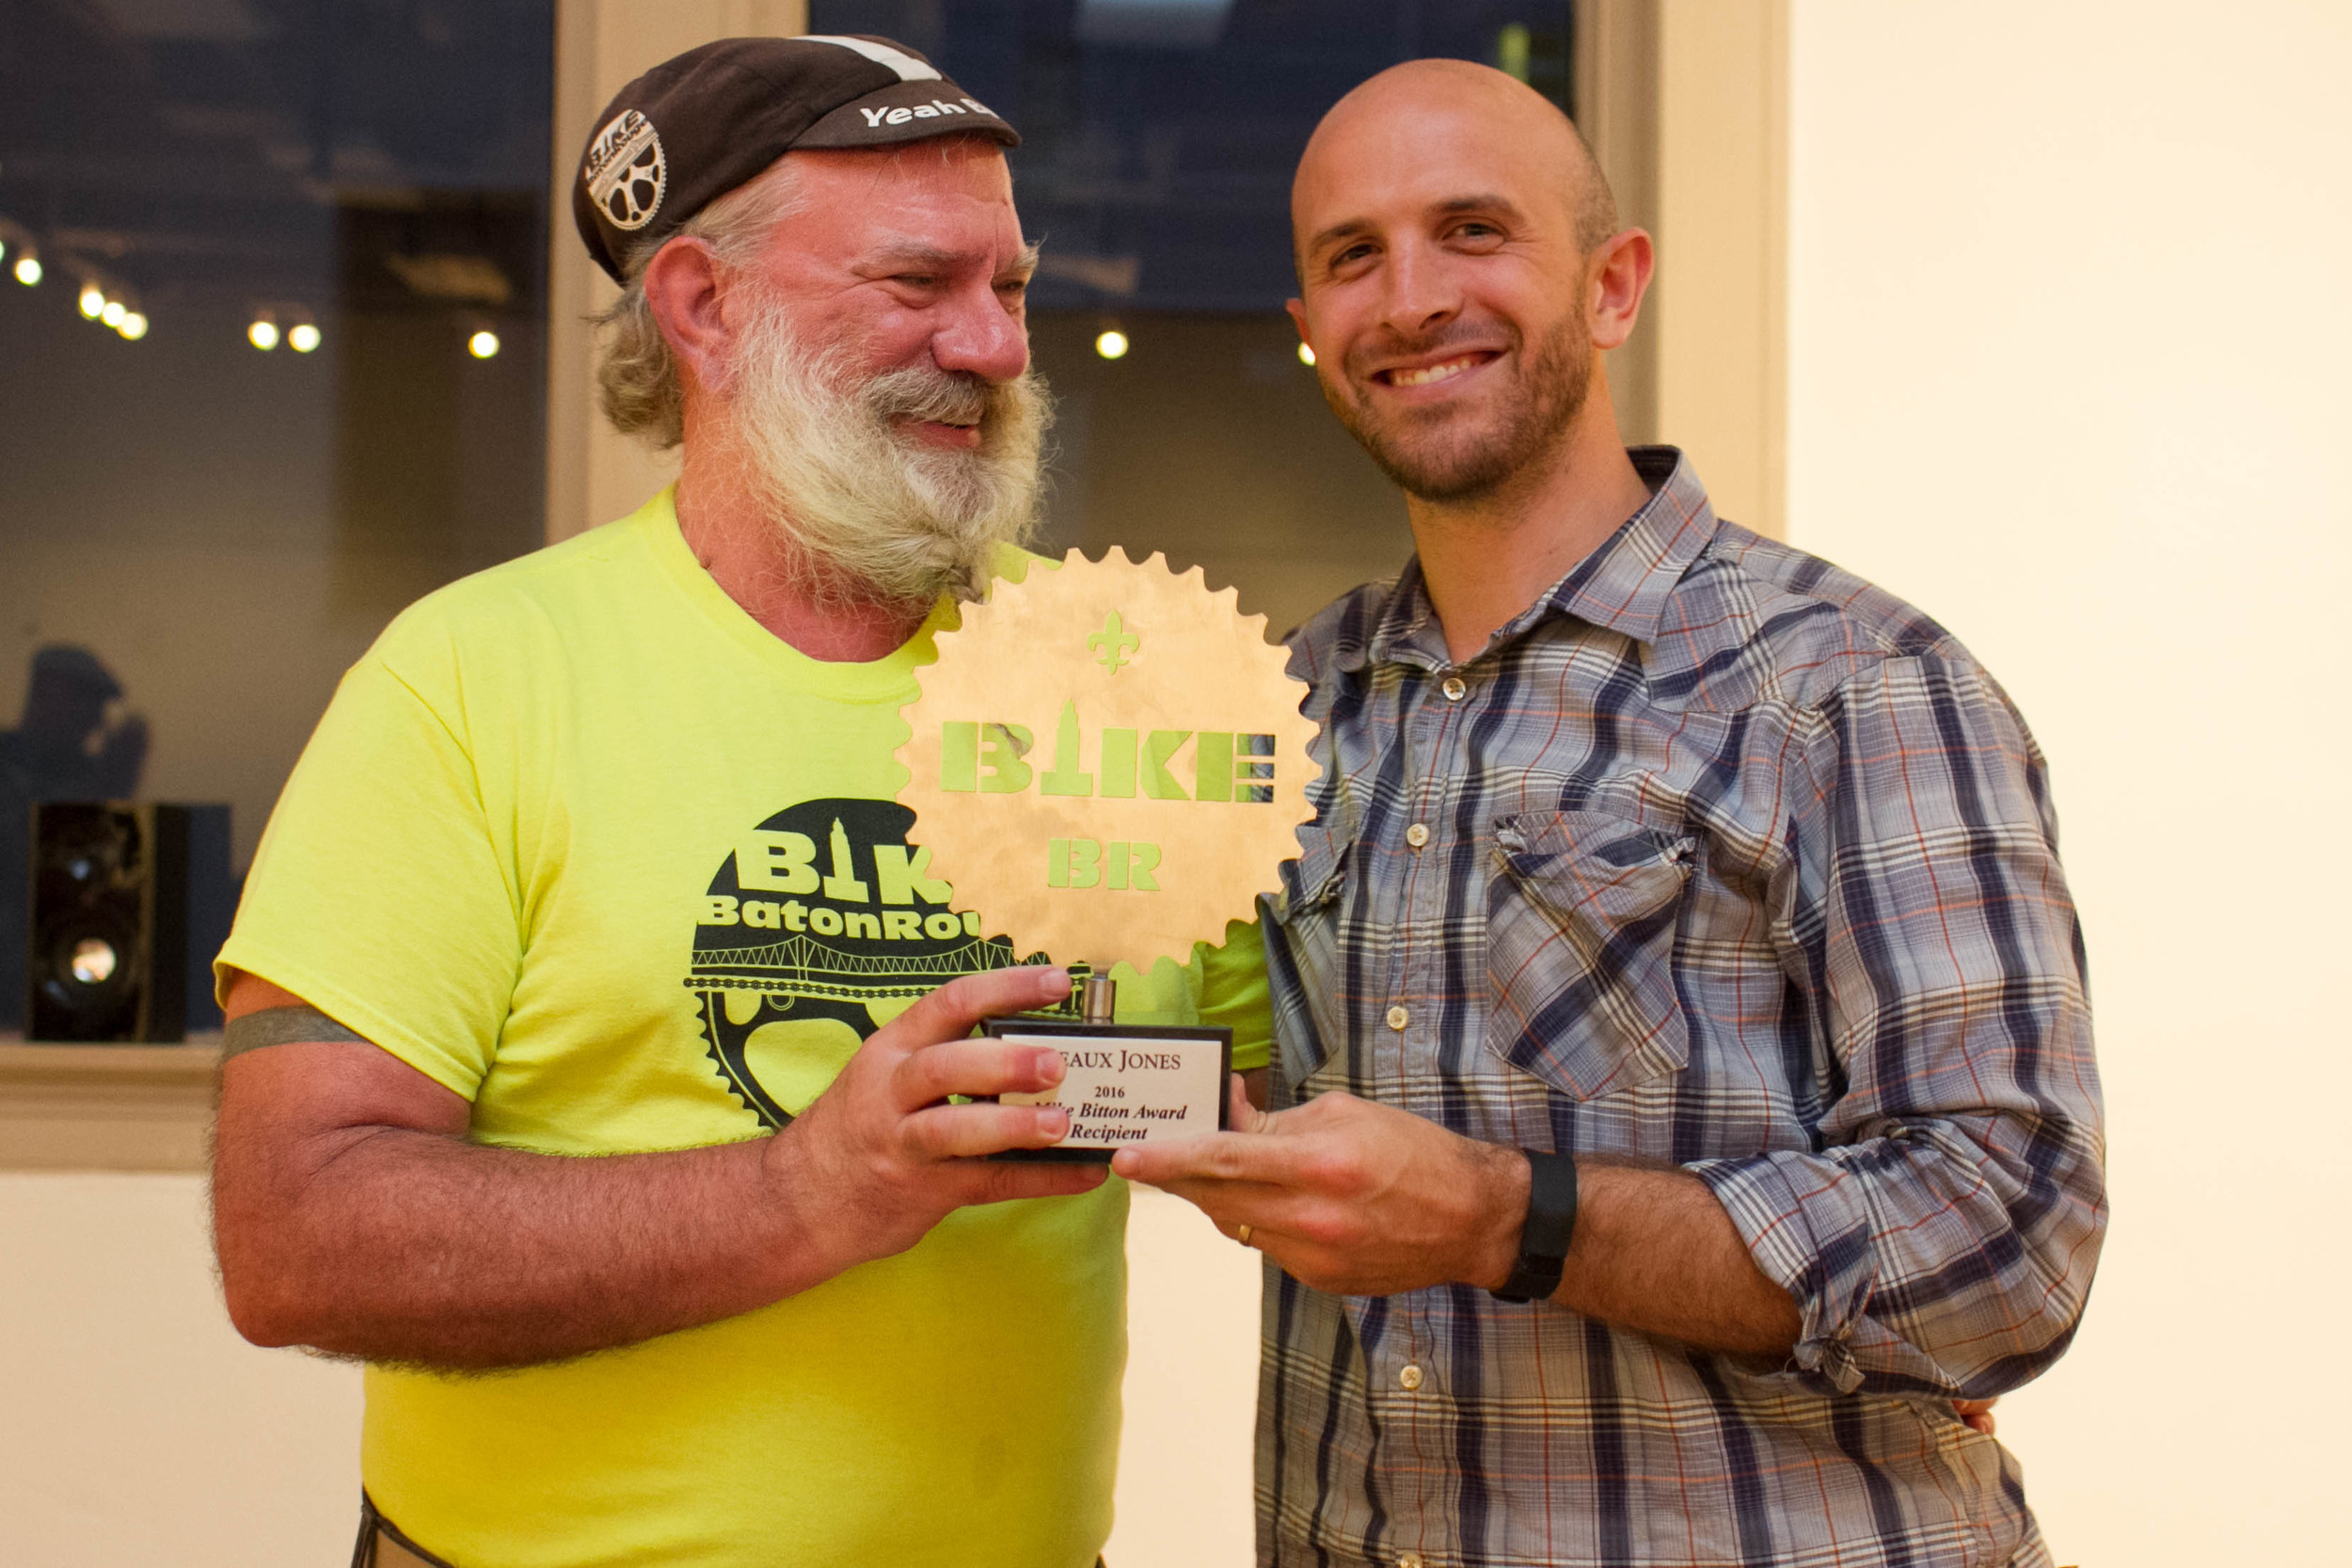 Outgoing Bike Baton Rouge Mark Martin (left) and Beaux Jones (Photograph by Irene Kato)